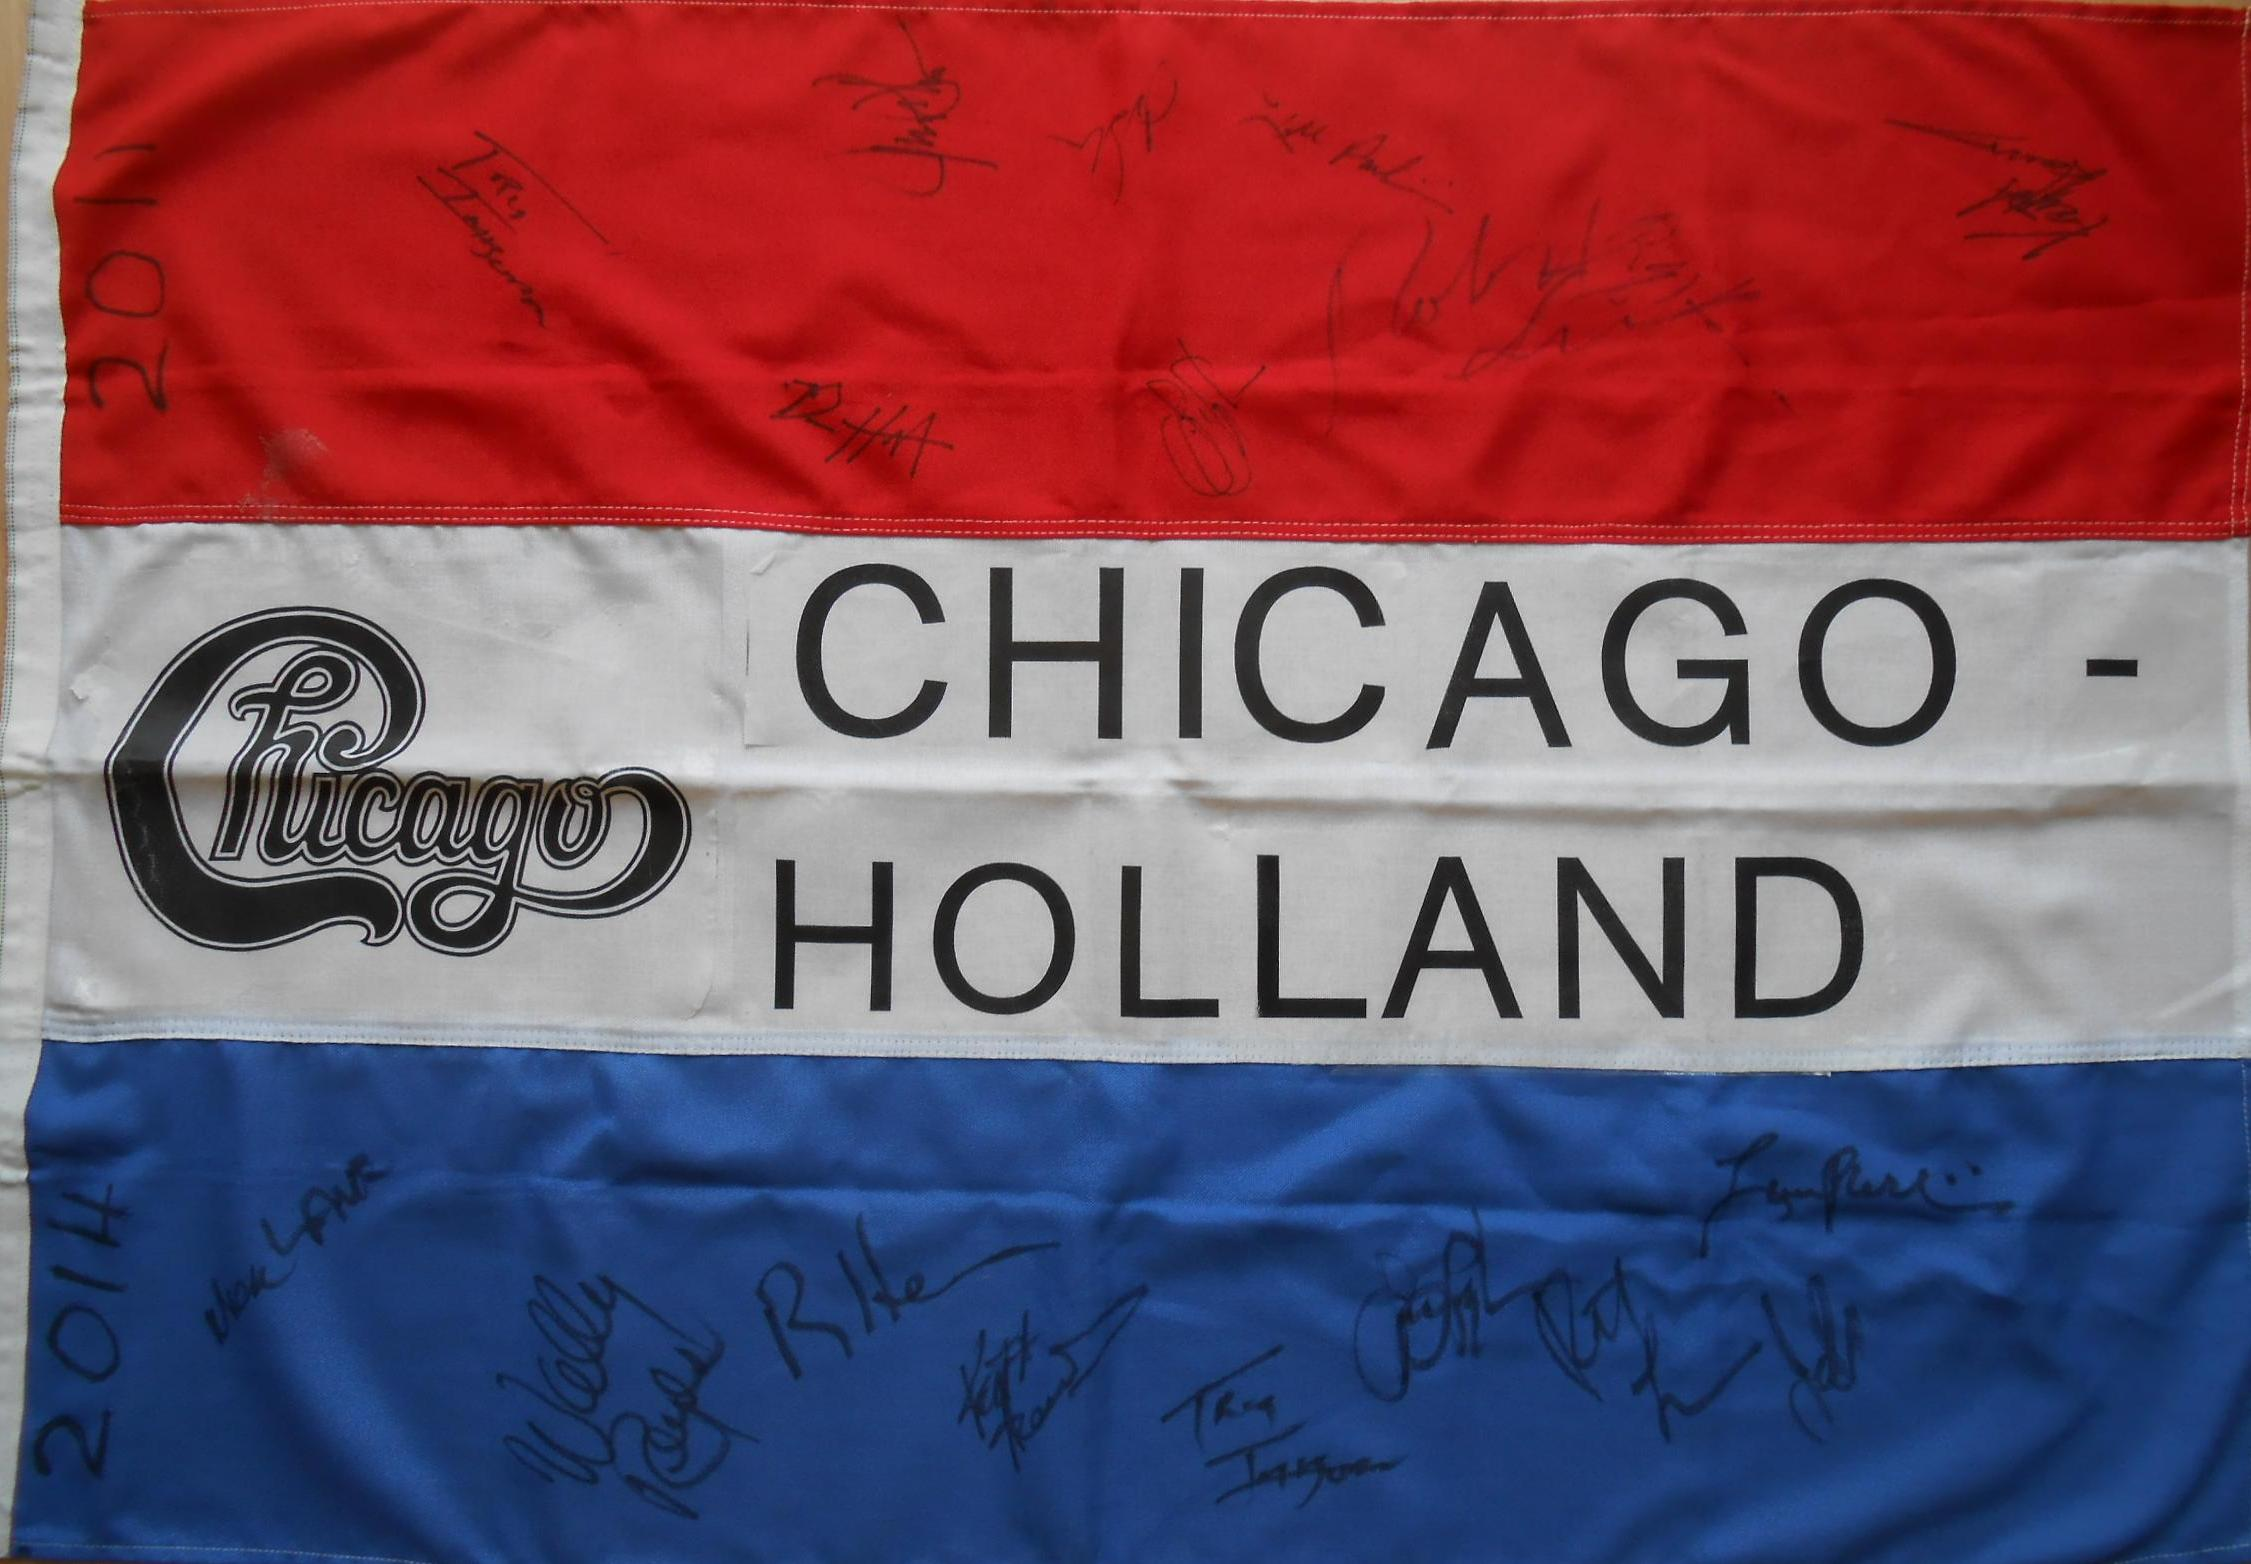 holland singles Christian singles events, activities, groups in michigan (mi) for fellowship, bible study, socializing also christian singles conferences, retreats, cruises, vacations.